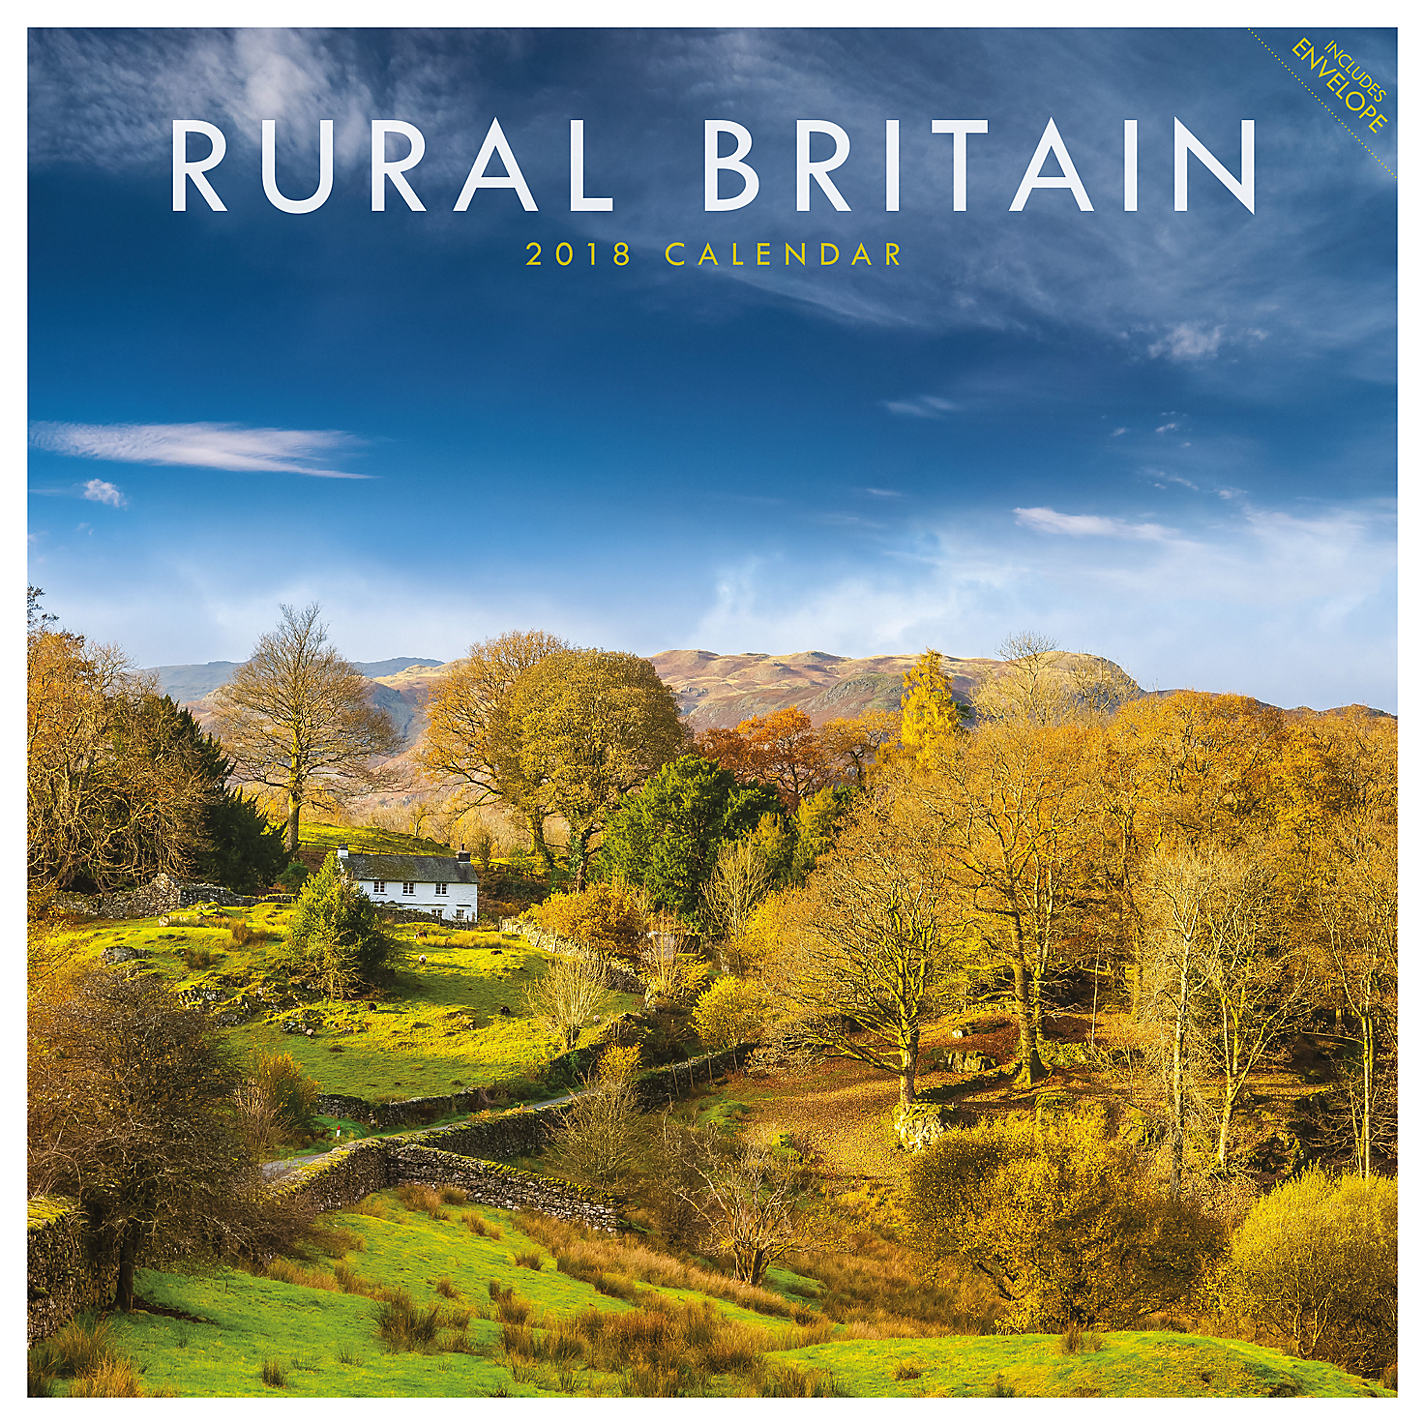 Rural Britain 2018 Calendar Online At Johnlewis